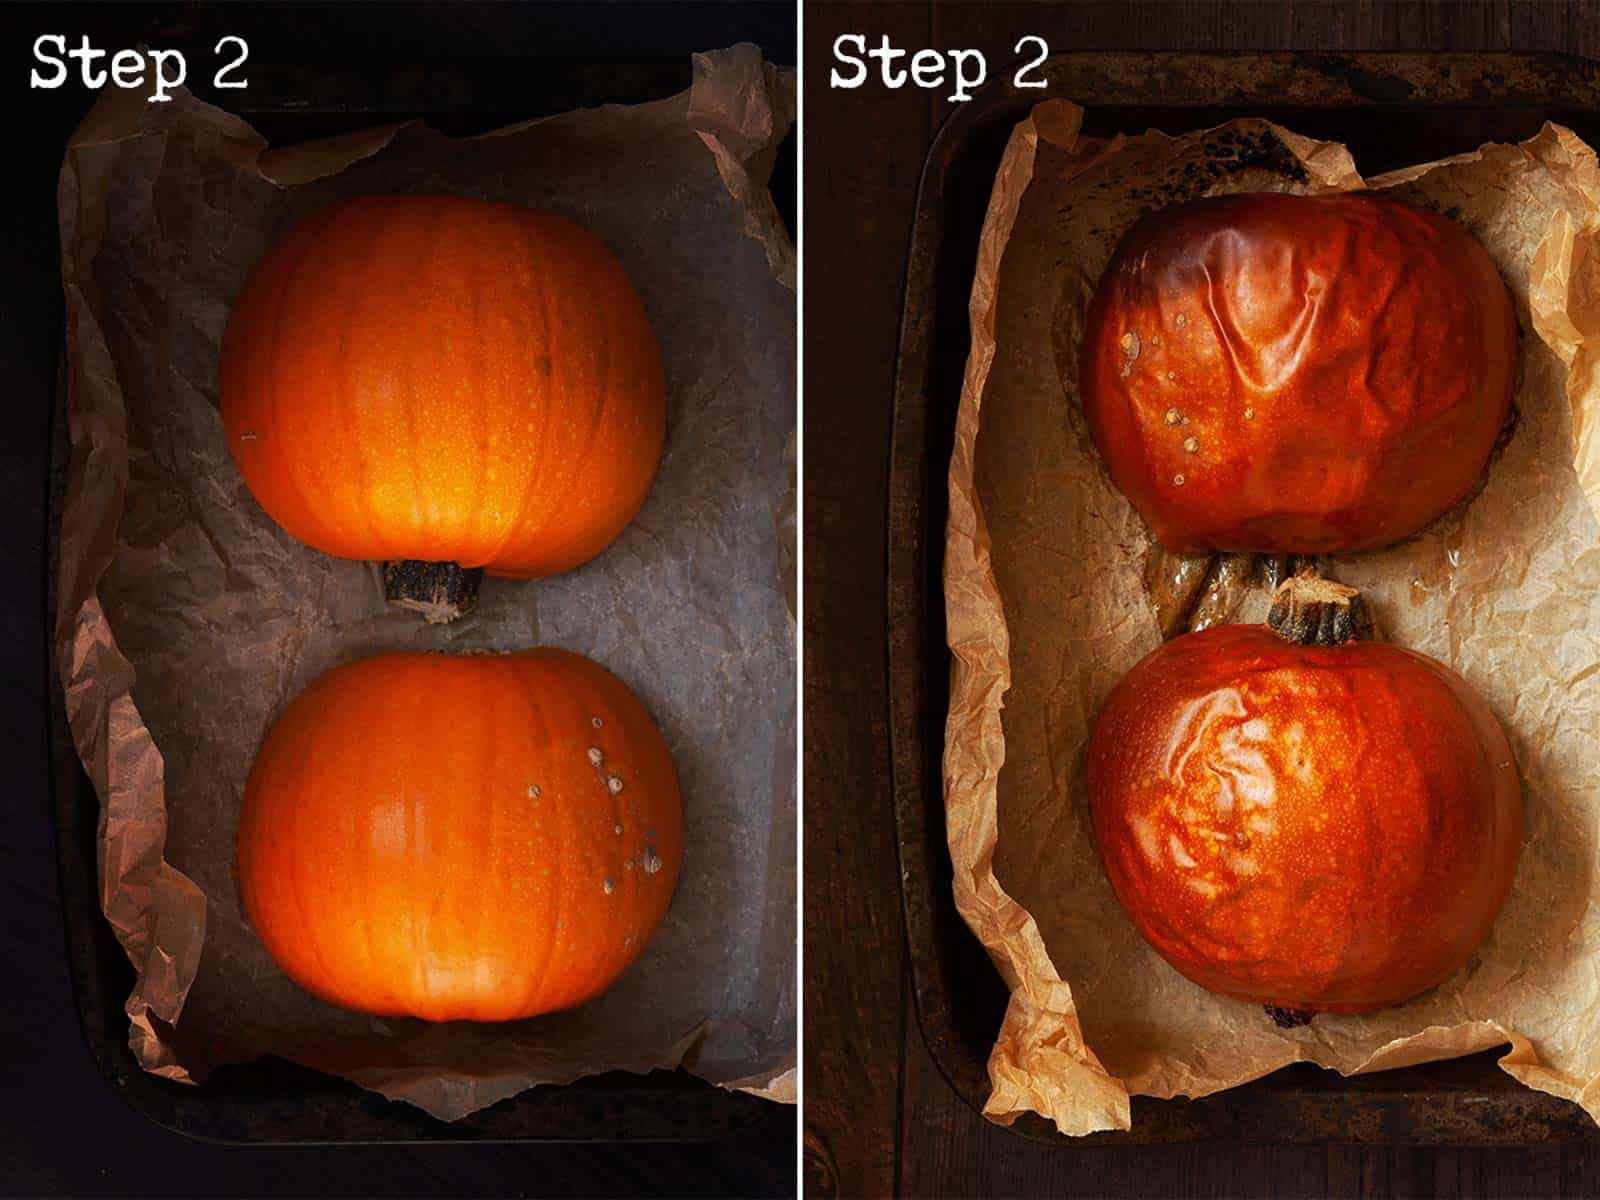 Two images showing pumpkin halves before and after roasting